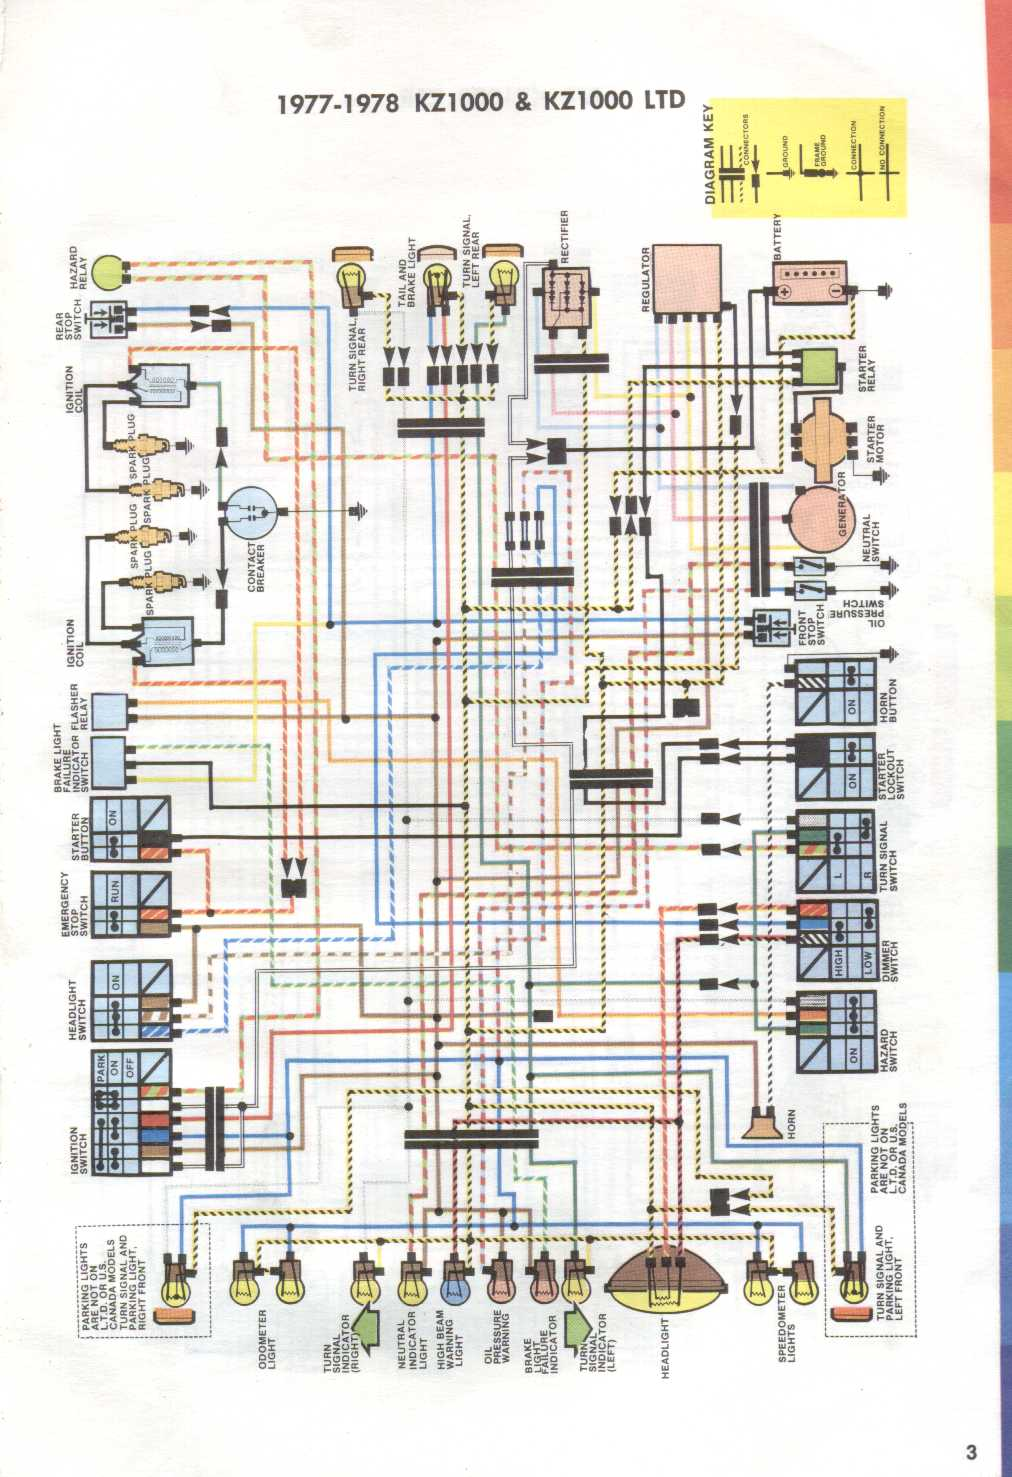 1980 kz1000 wiring diagram color 1981 kz1000 wiring diagram